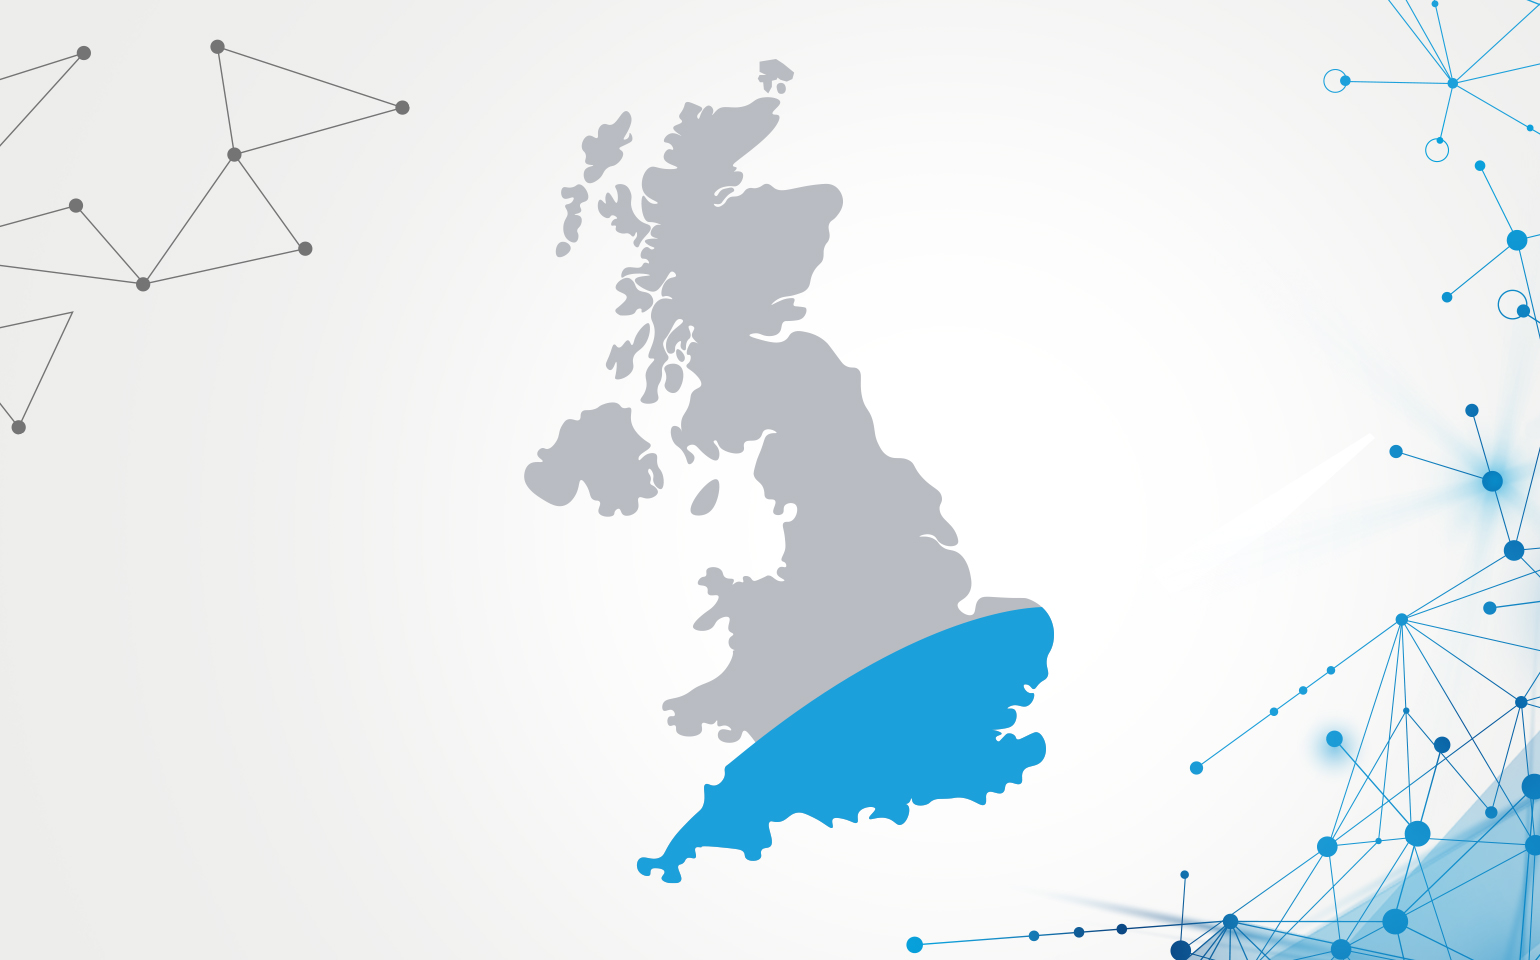 London and the South East lead the way in UK's digital transformation